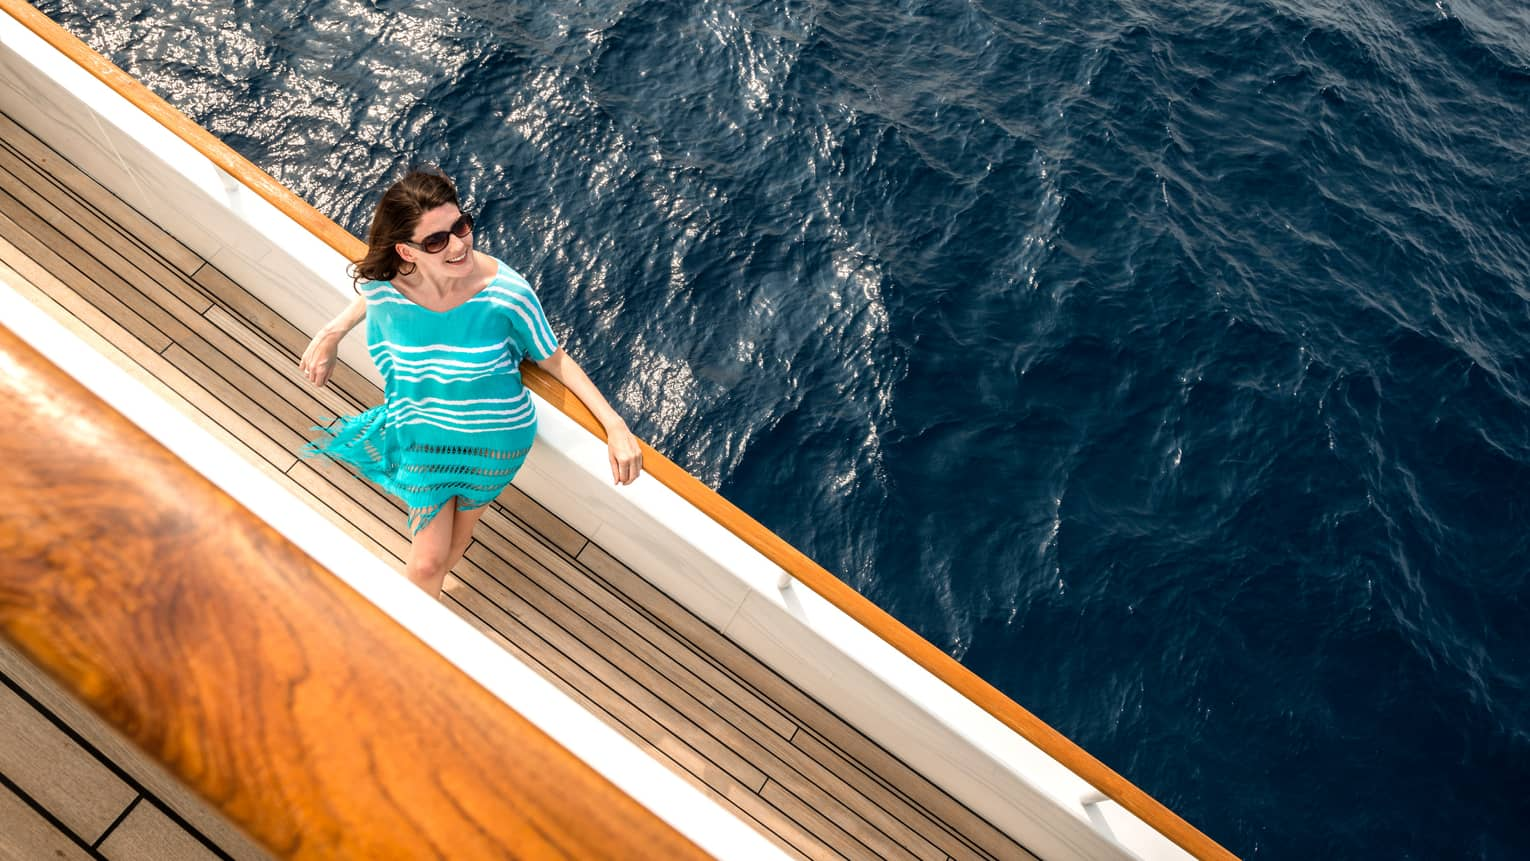 Woman wearing striped teal dress, sunglasses looks up from yacht railing